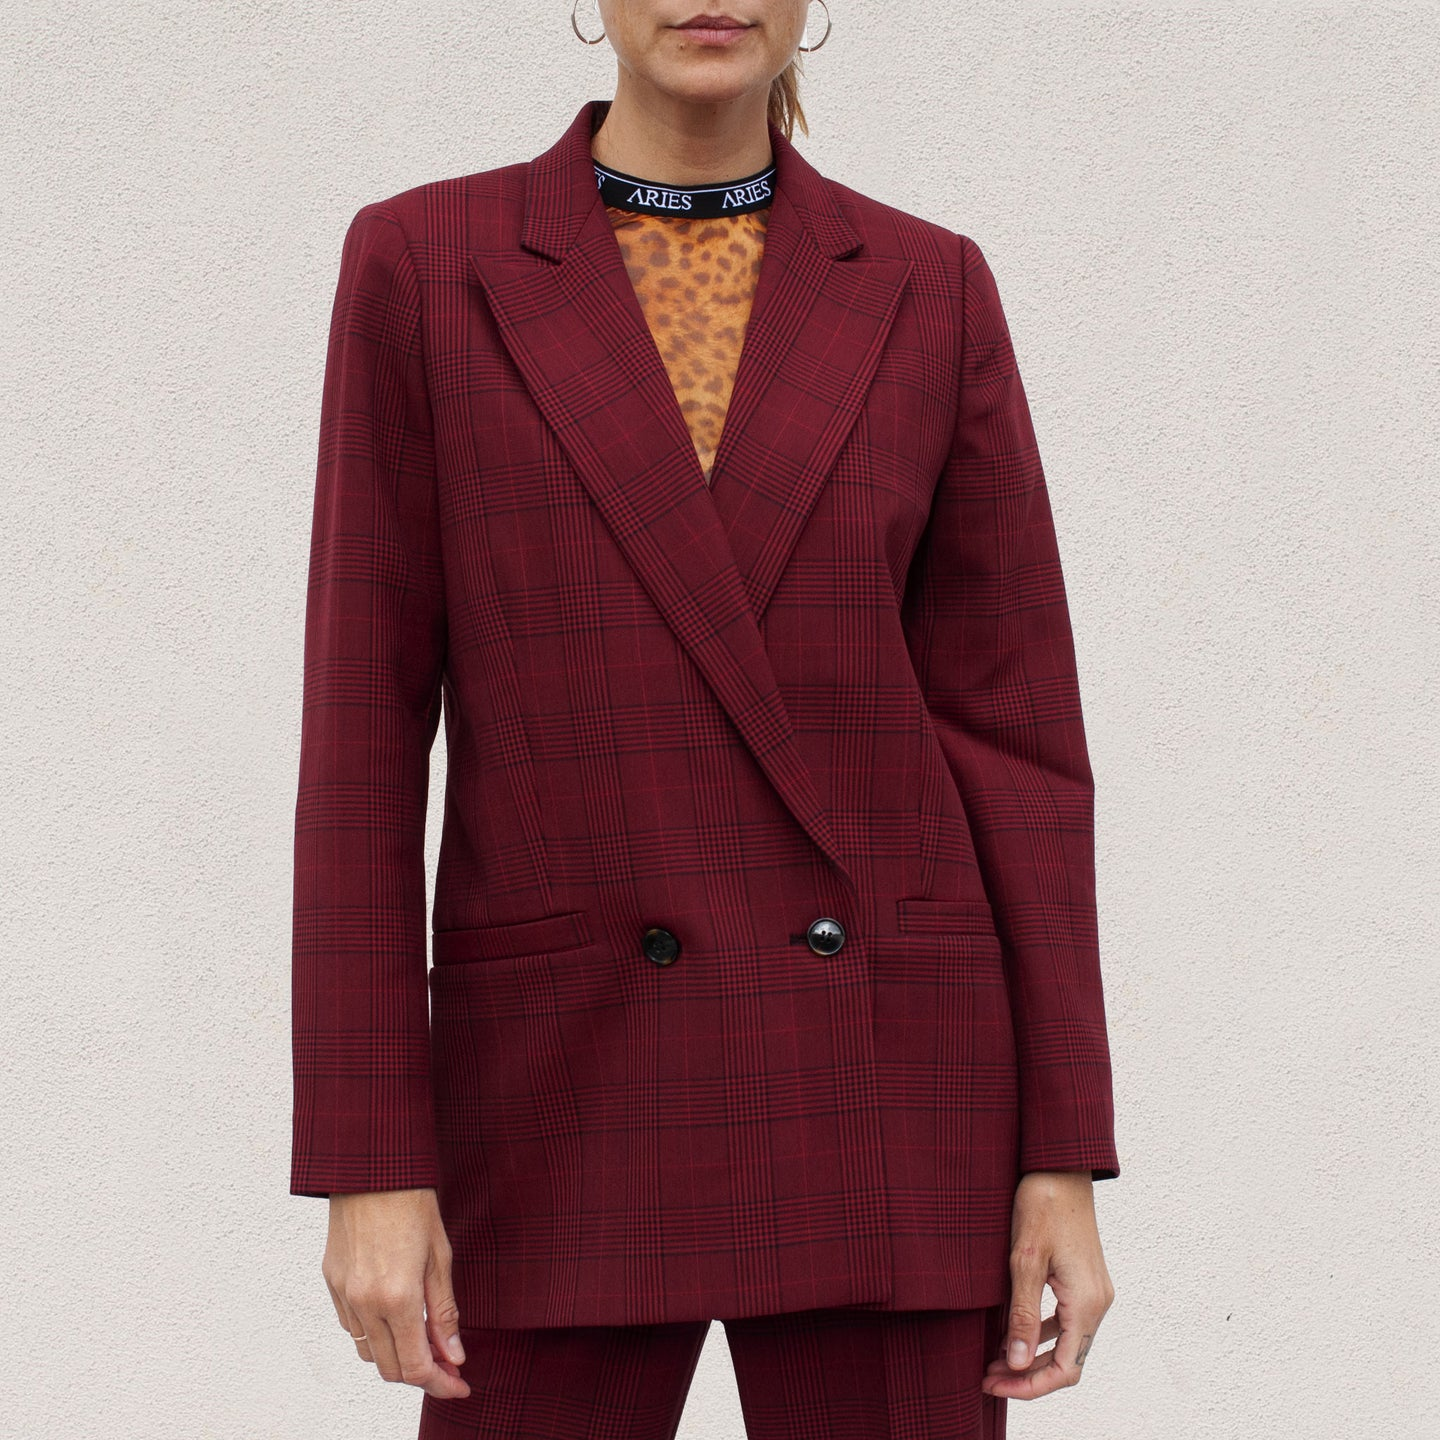 Ganni - Checked Suit Blazer, front view, available at LCD.